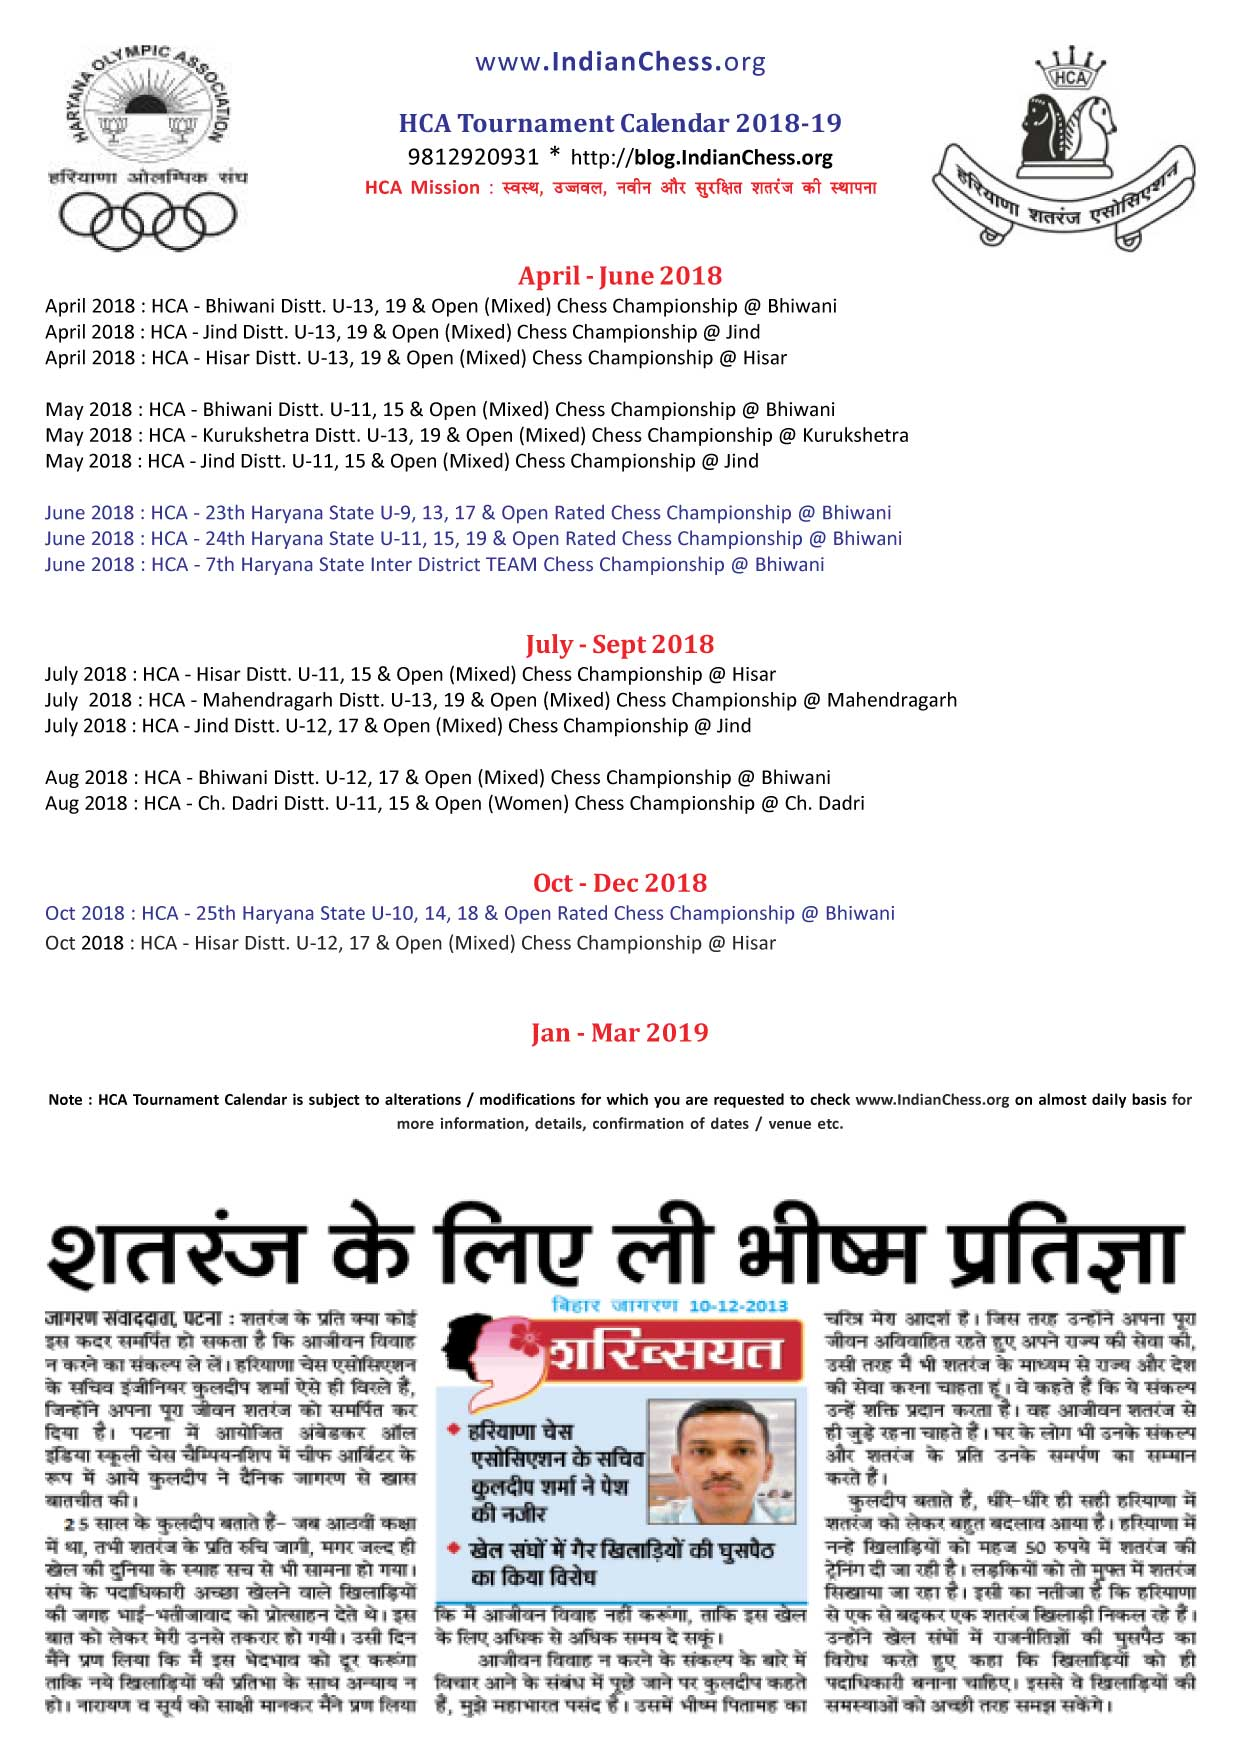 Forex association of india calendar 2013